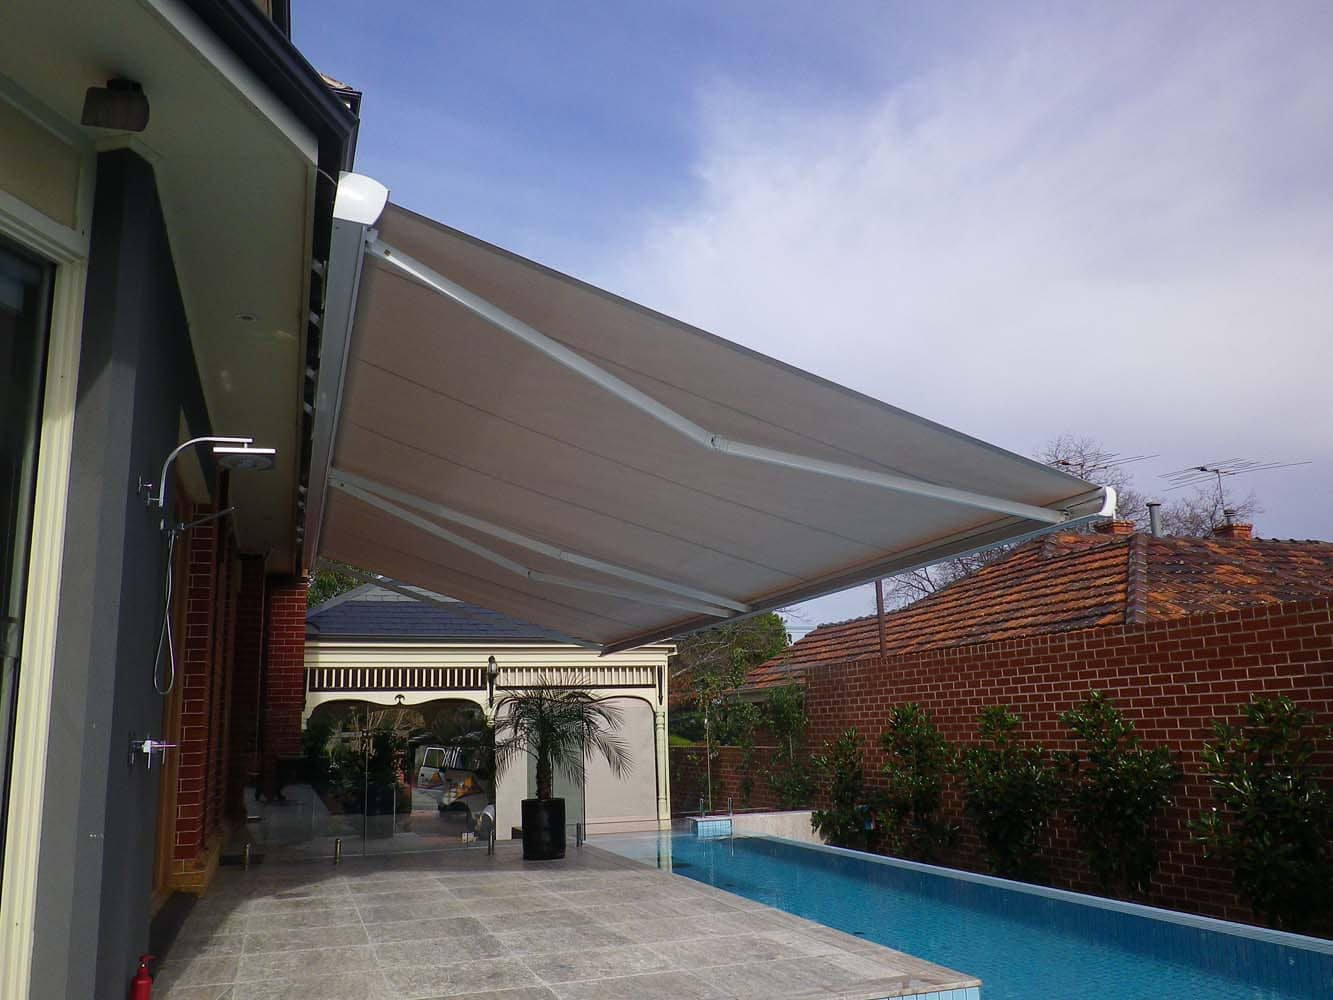 OUTDOOR AWNING 10